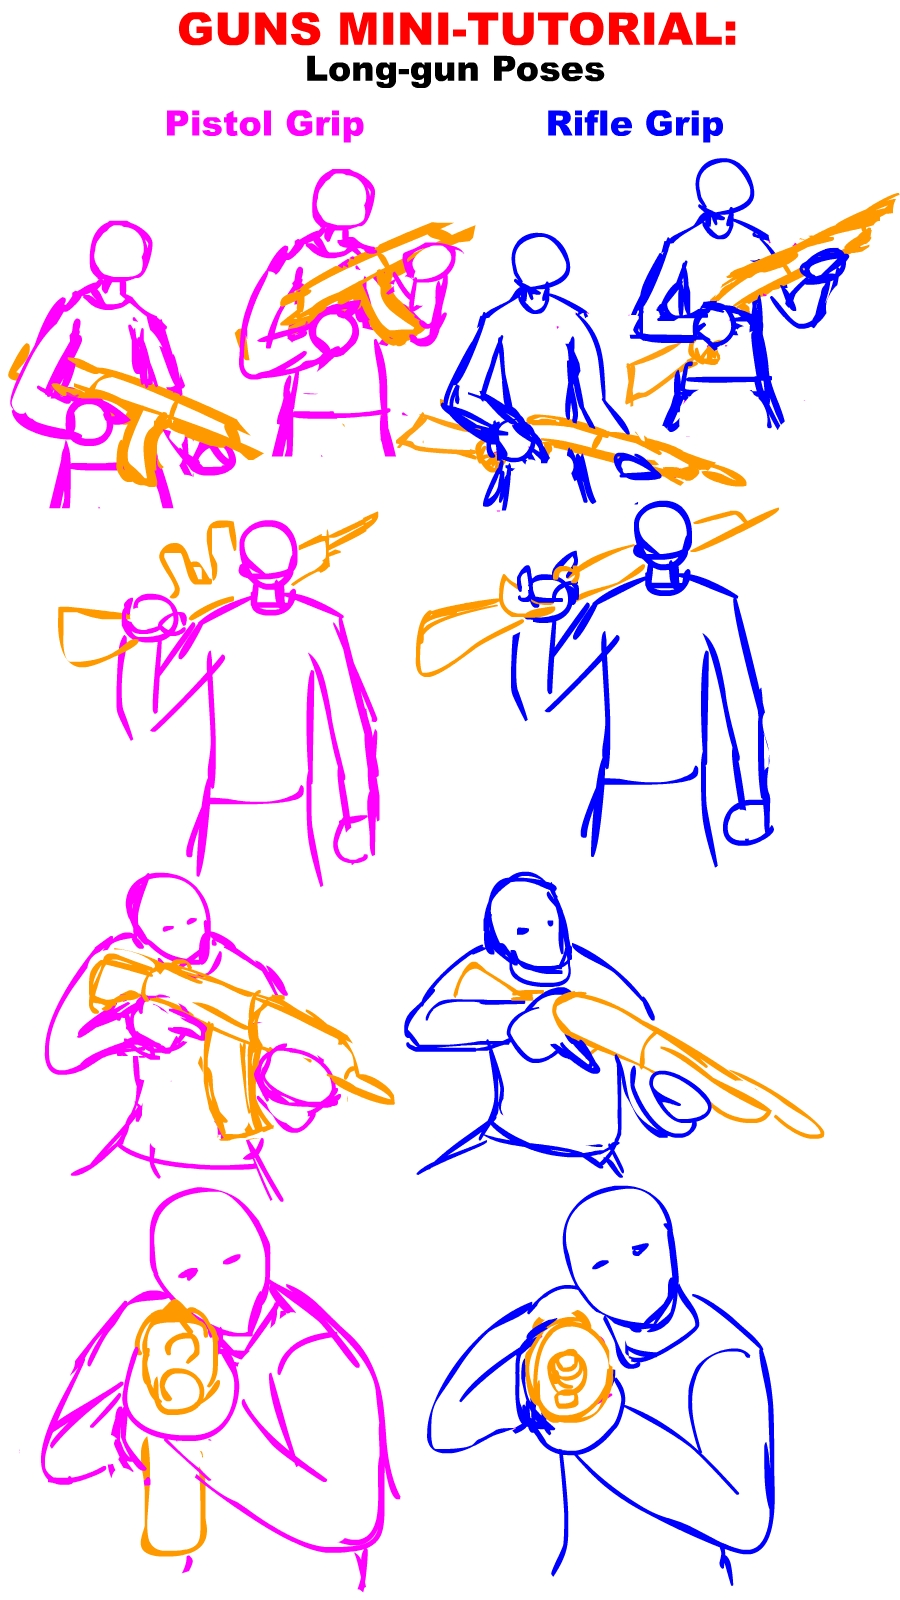 Guns Tutorial: Long gun Poses by PhiTuS